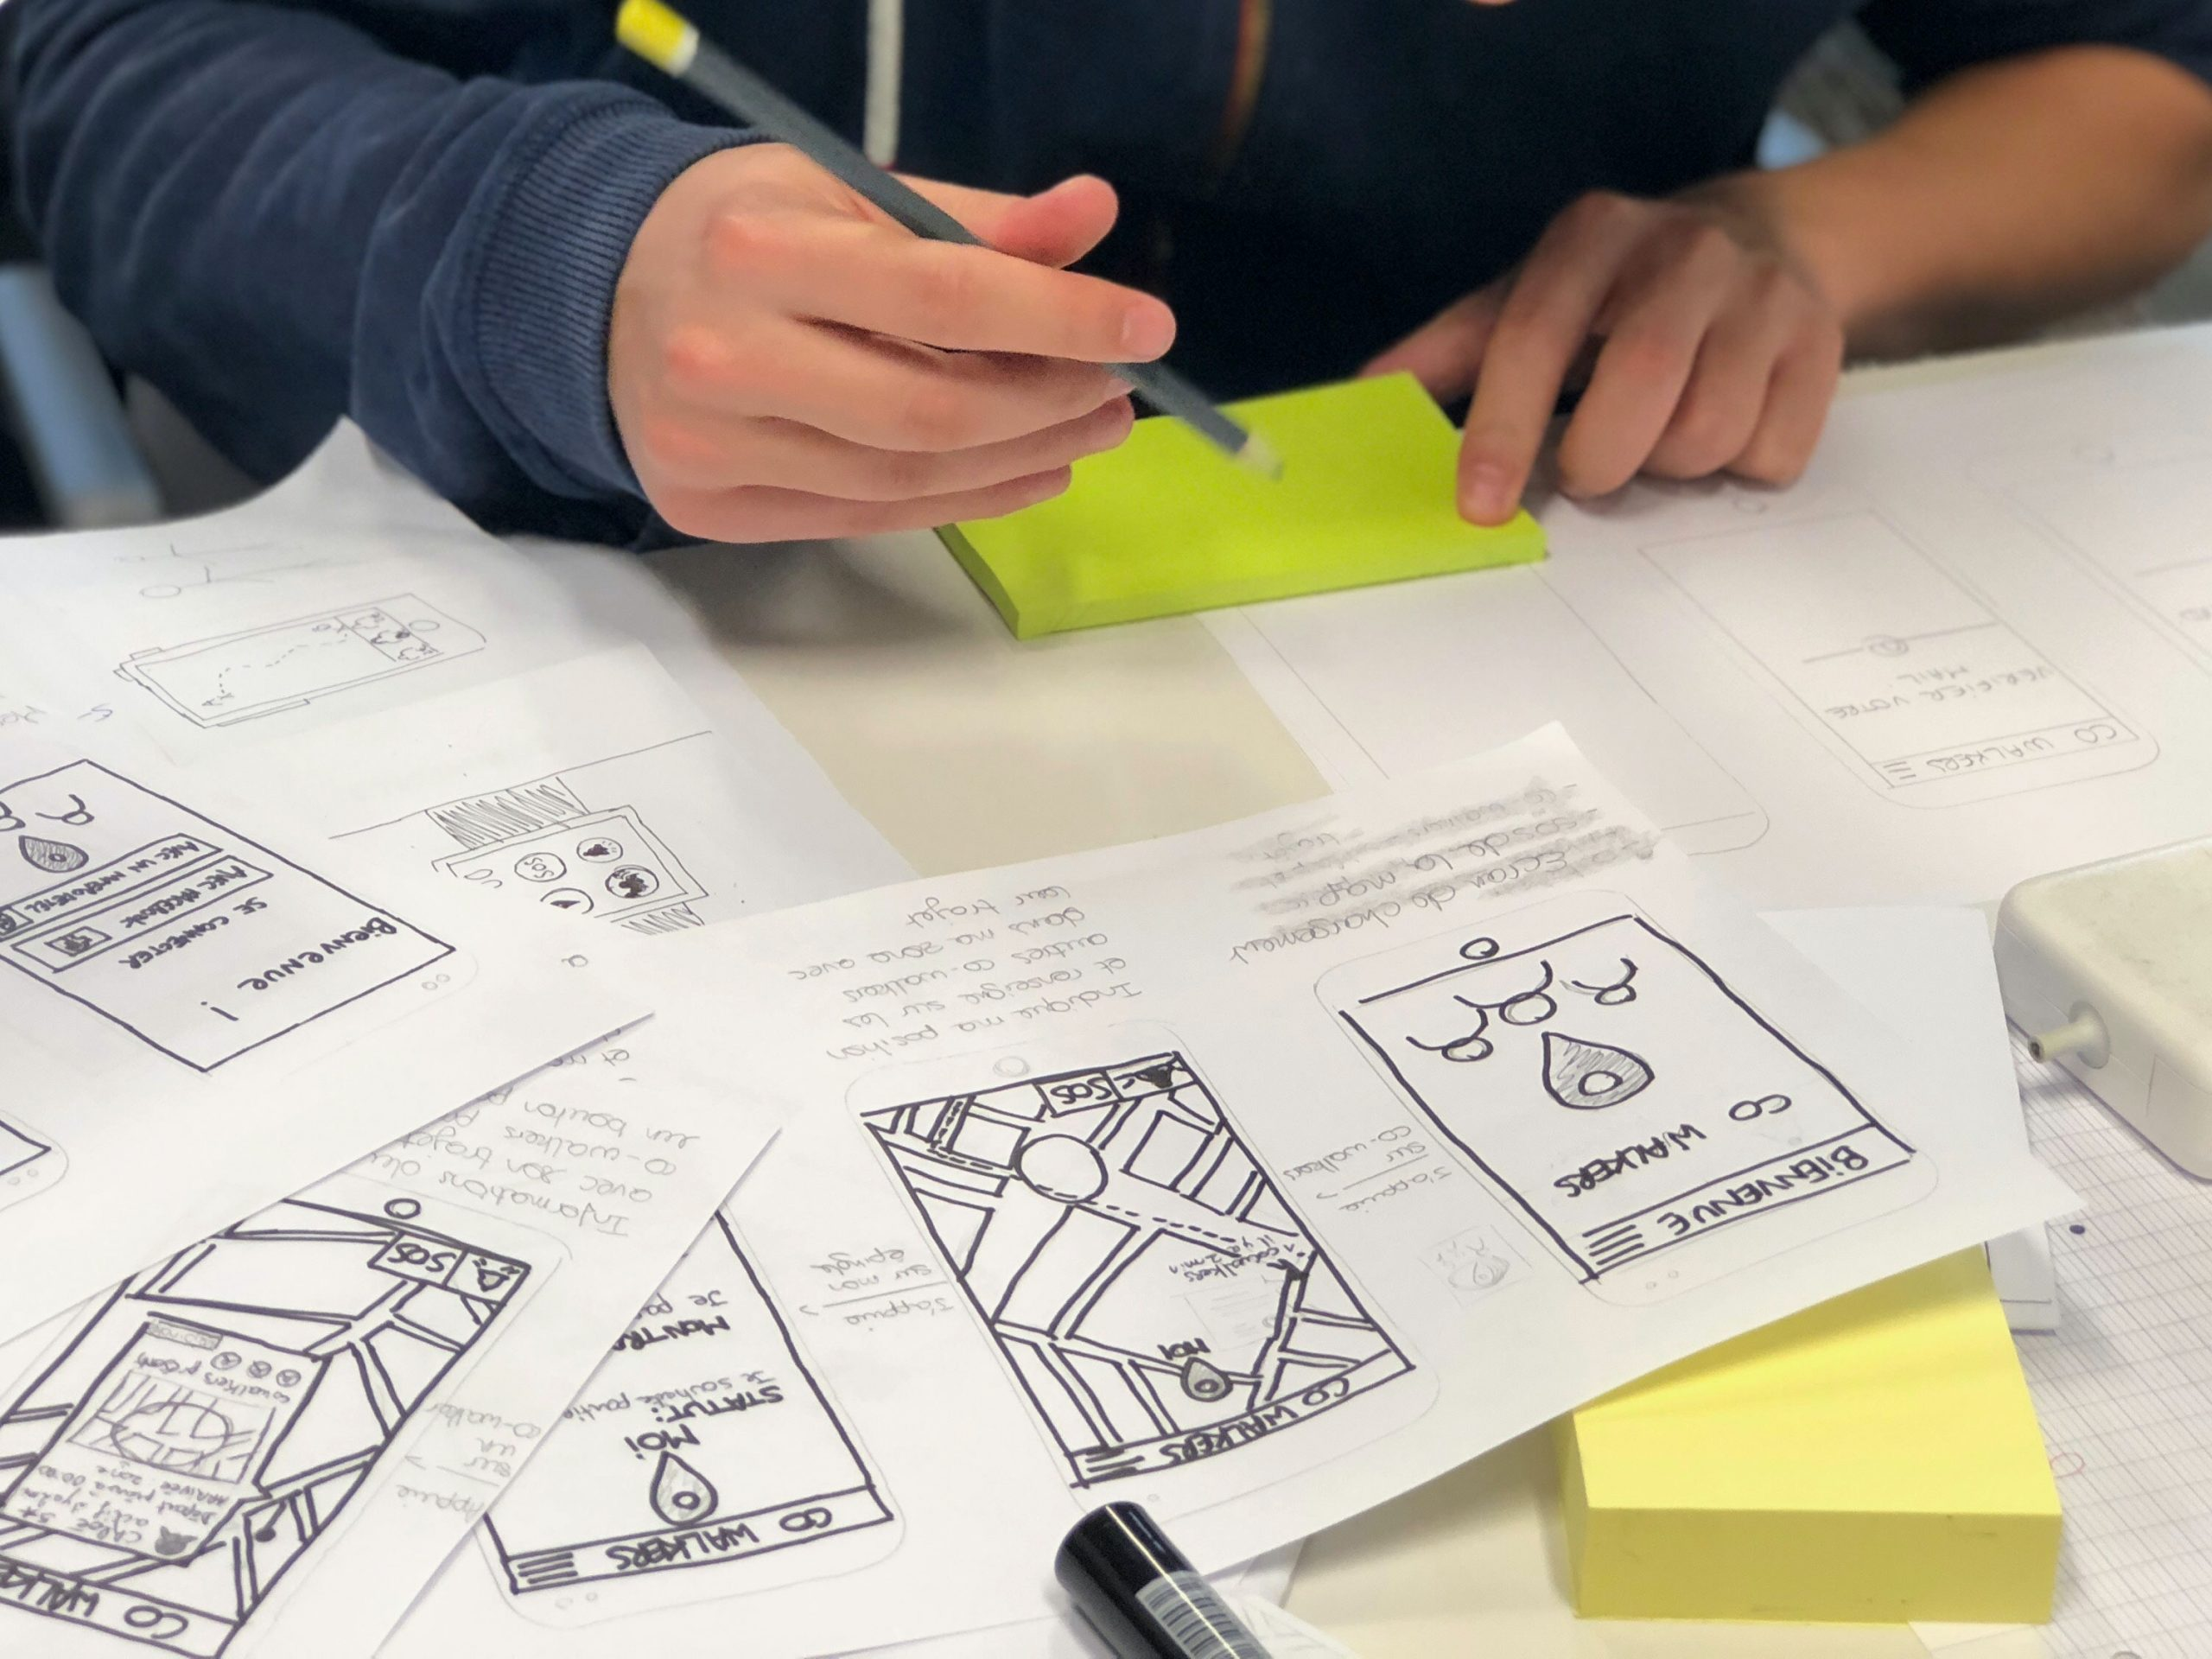 paper sketches of an app